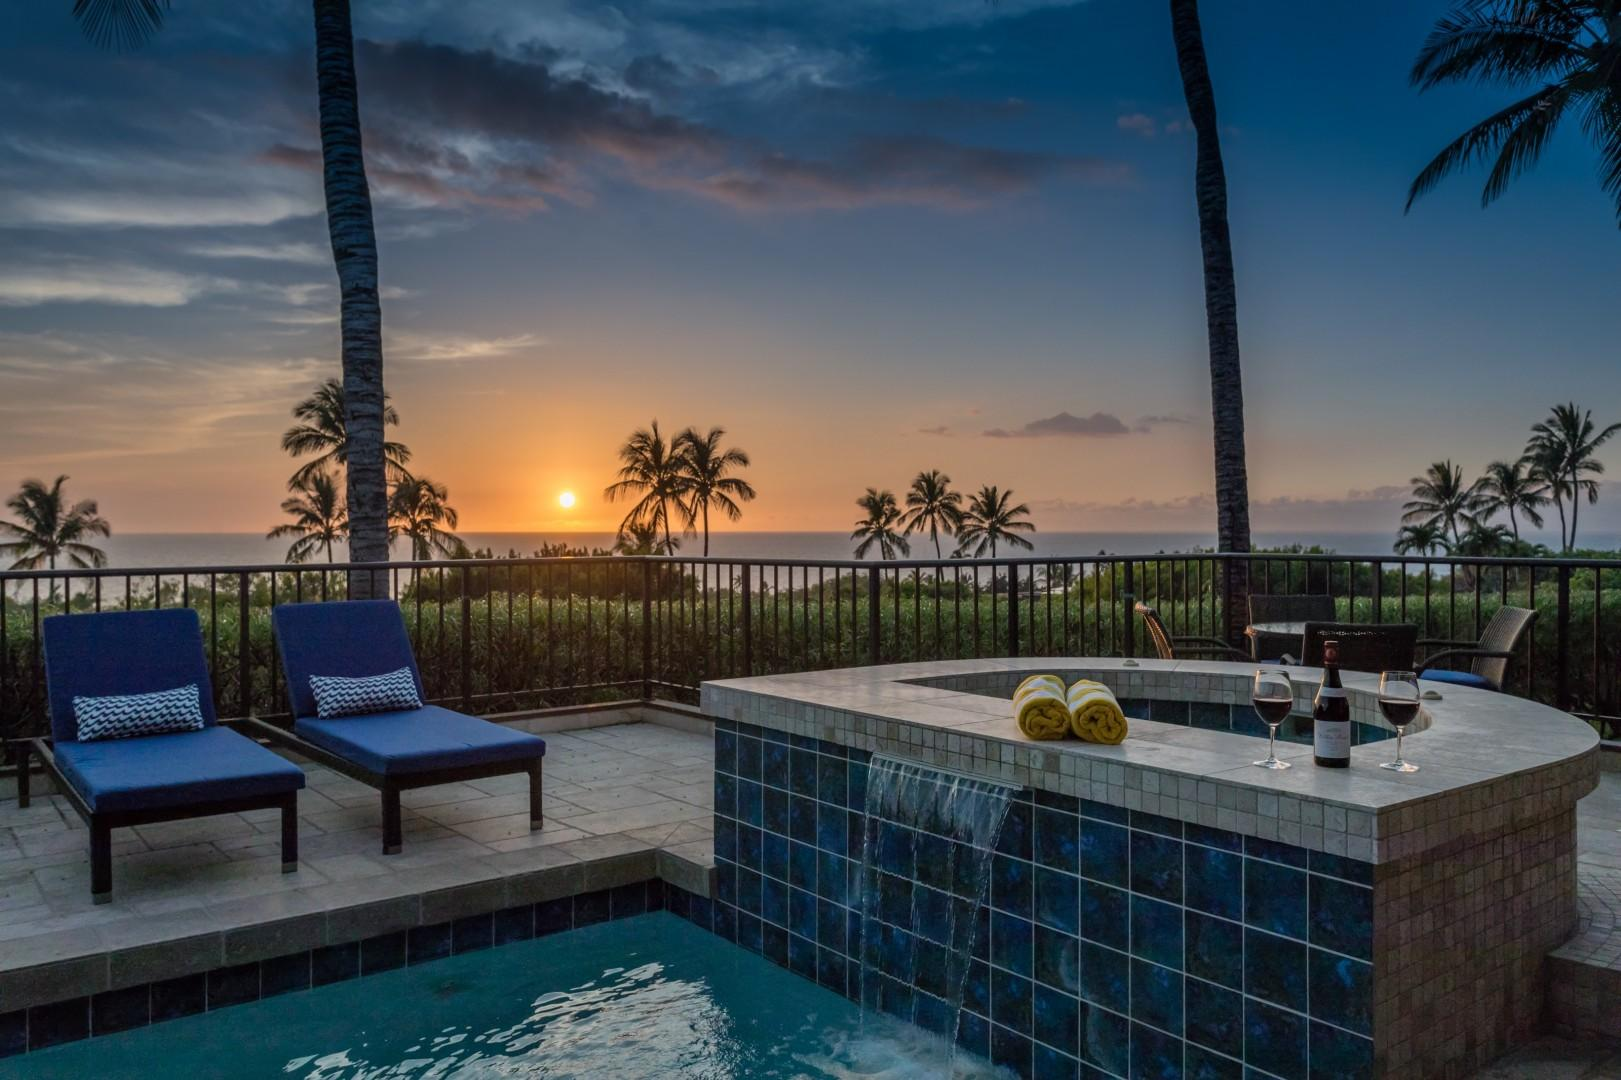 Sunset and ocean views from waterfall jacuzzi.